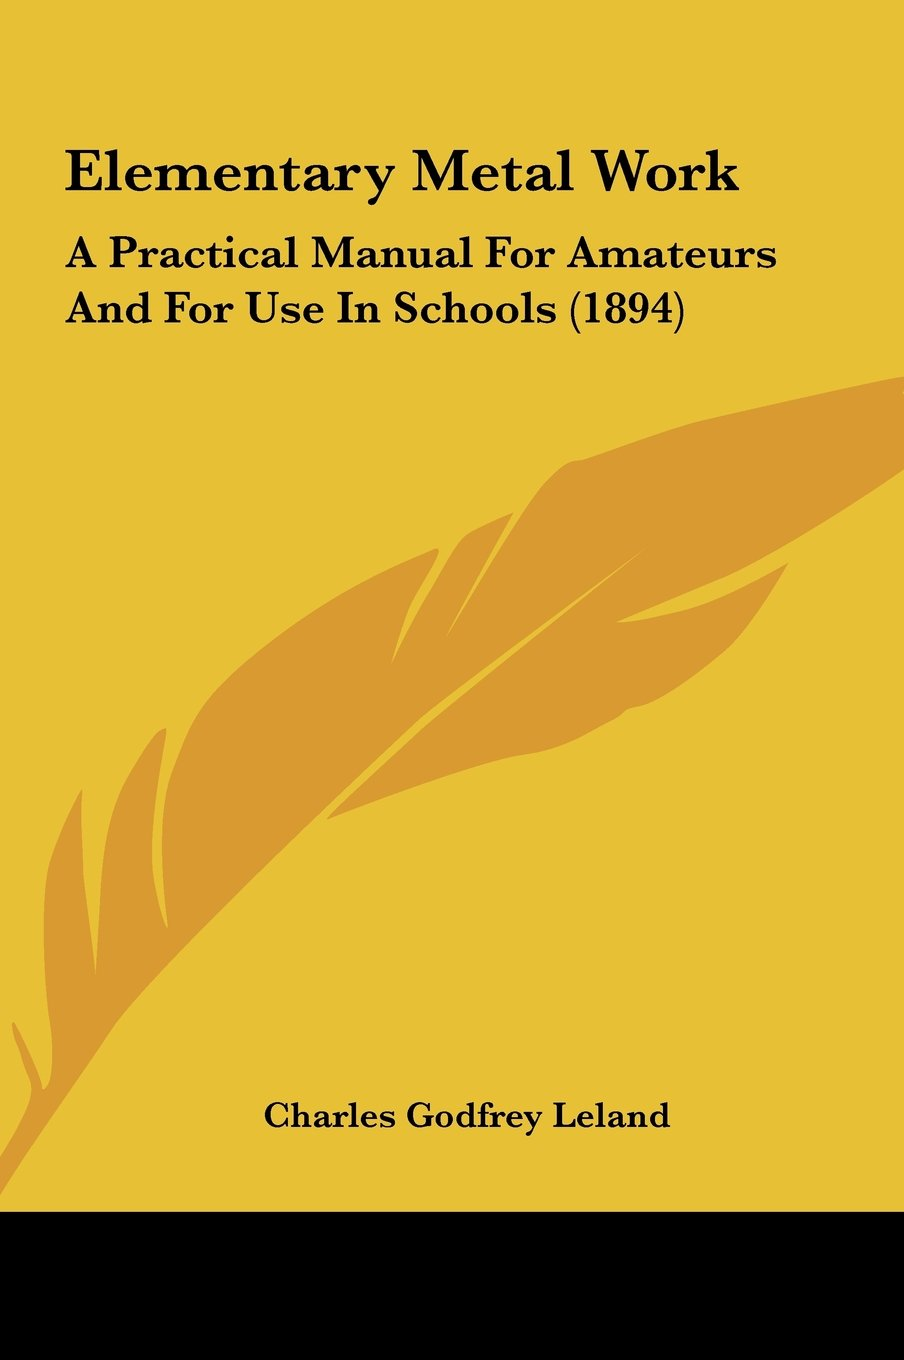 Elementary Metal Work: A Practical Manual For Amateurs And For Use In Schools (1894) PDF